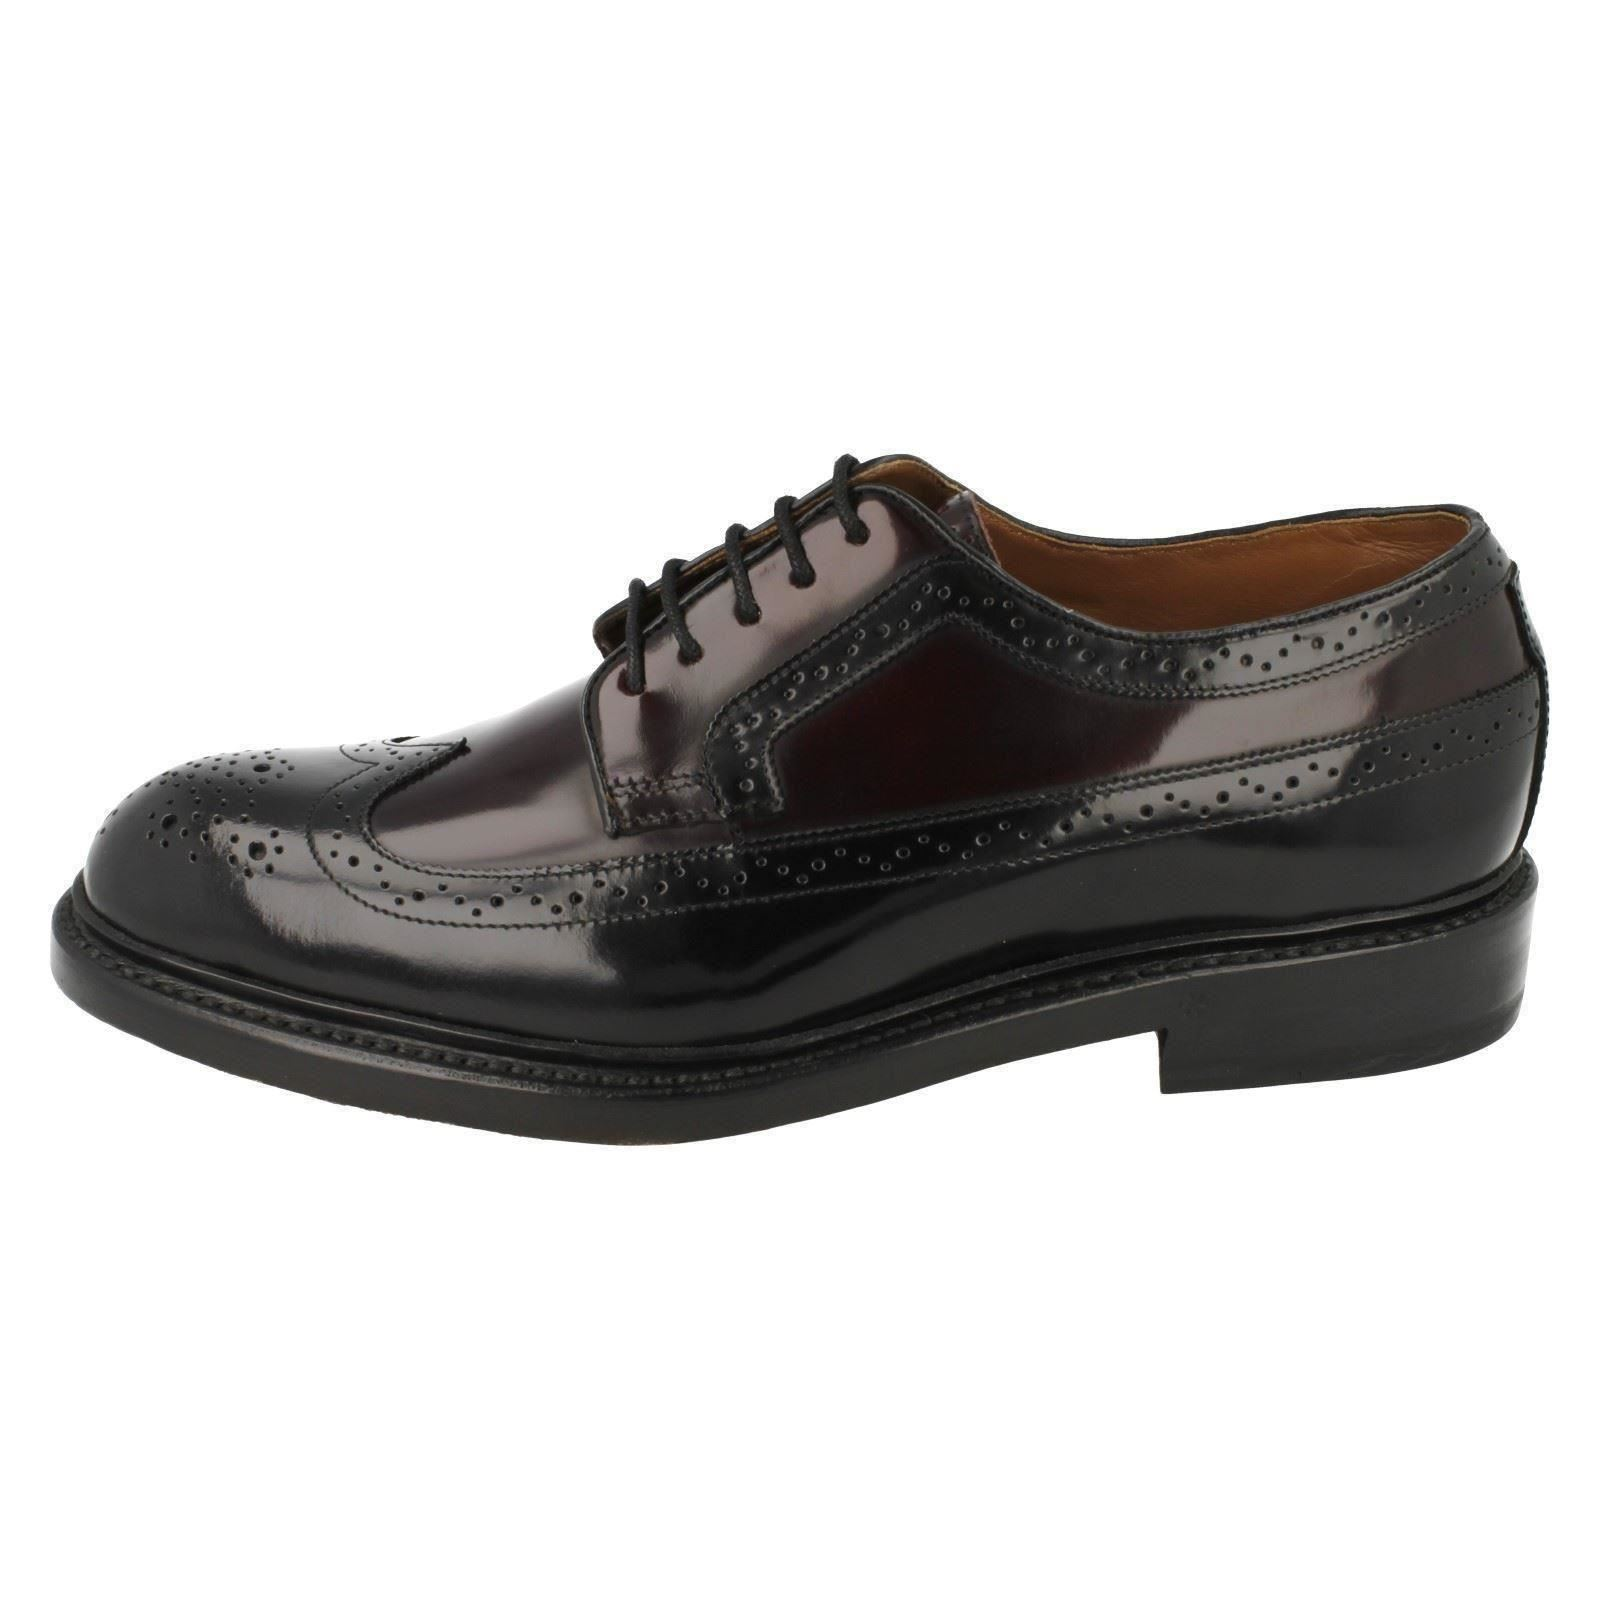 Limit Herren Clarks Formal Schuhes Style - Edward Limit  d1ecdd